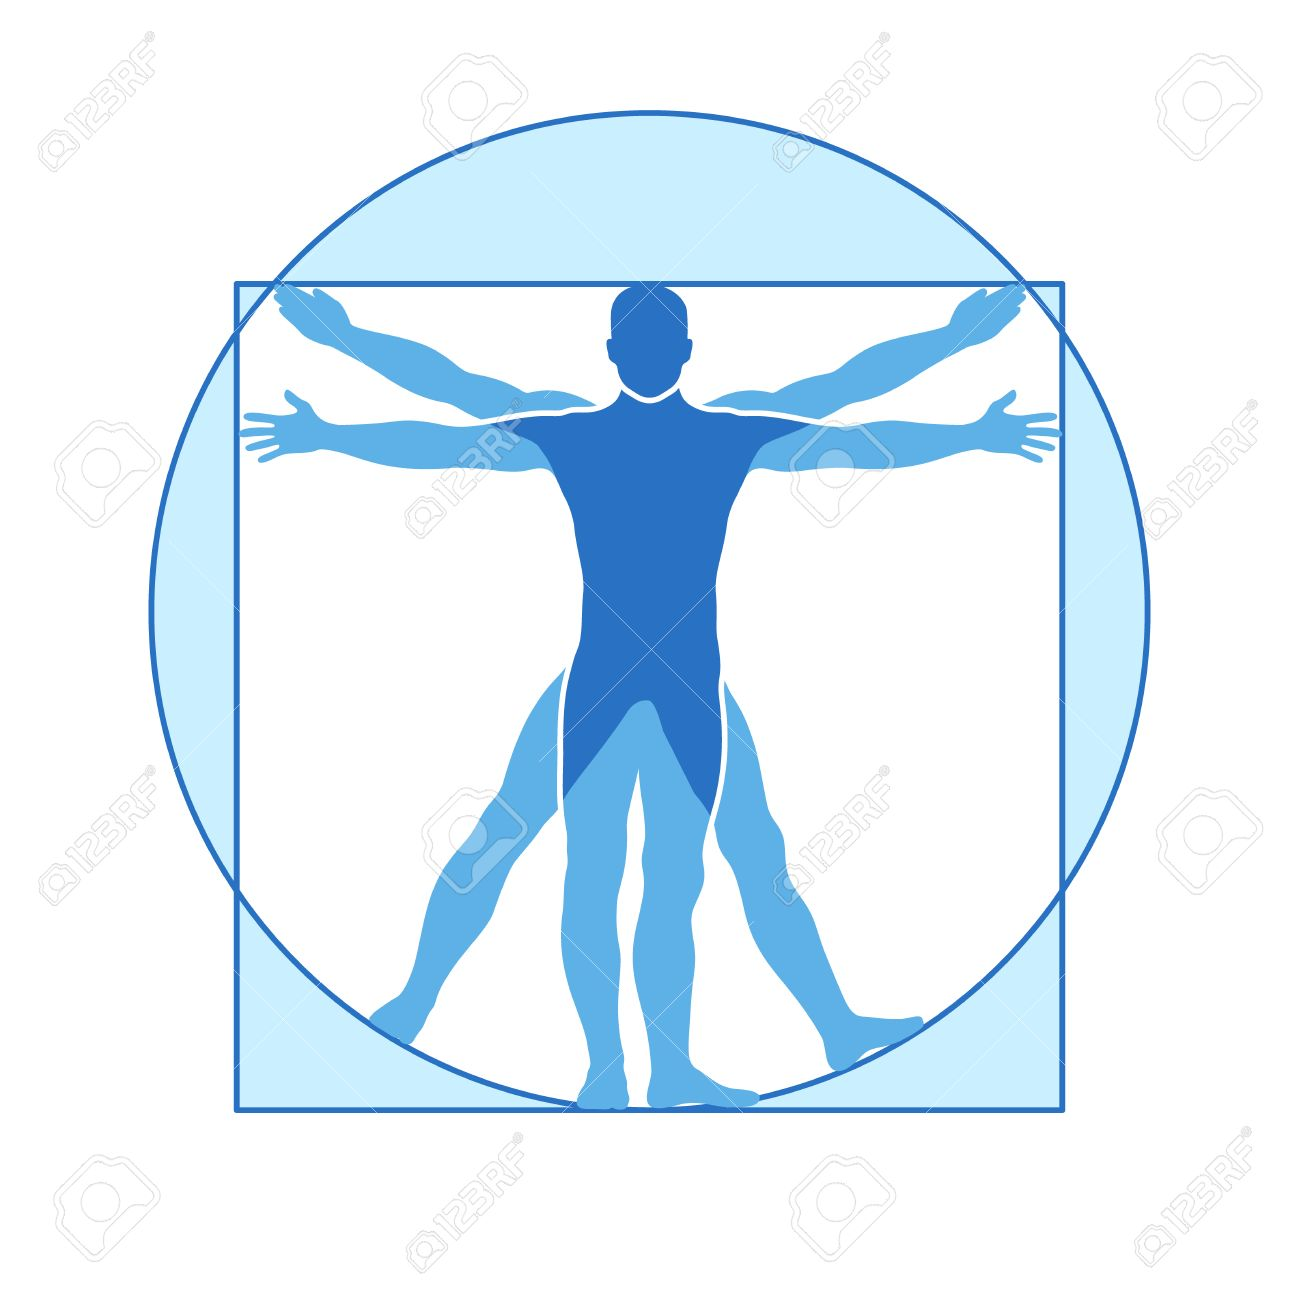 human body vector icon of vitruvian man famous leonardo da vinci royalty free cliparts vectors and stock illustration image 66411190 human body vector icon of vitruvian man famous leonardo da vinci